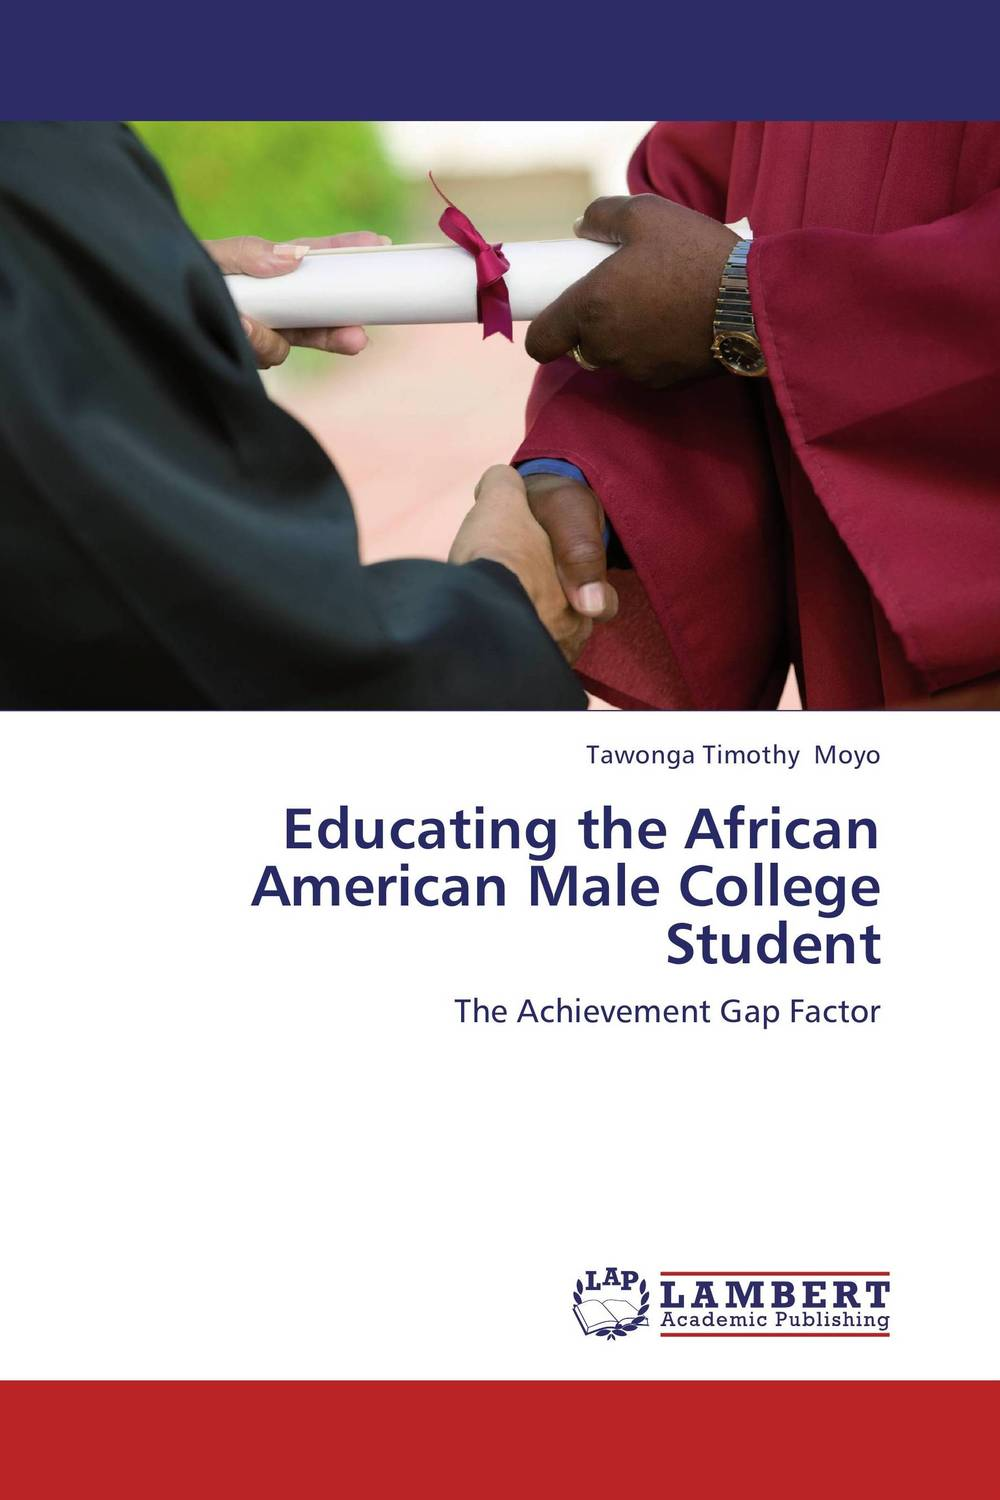 Educating the African American Male College Student